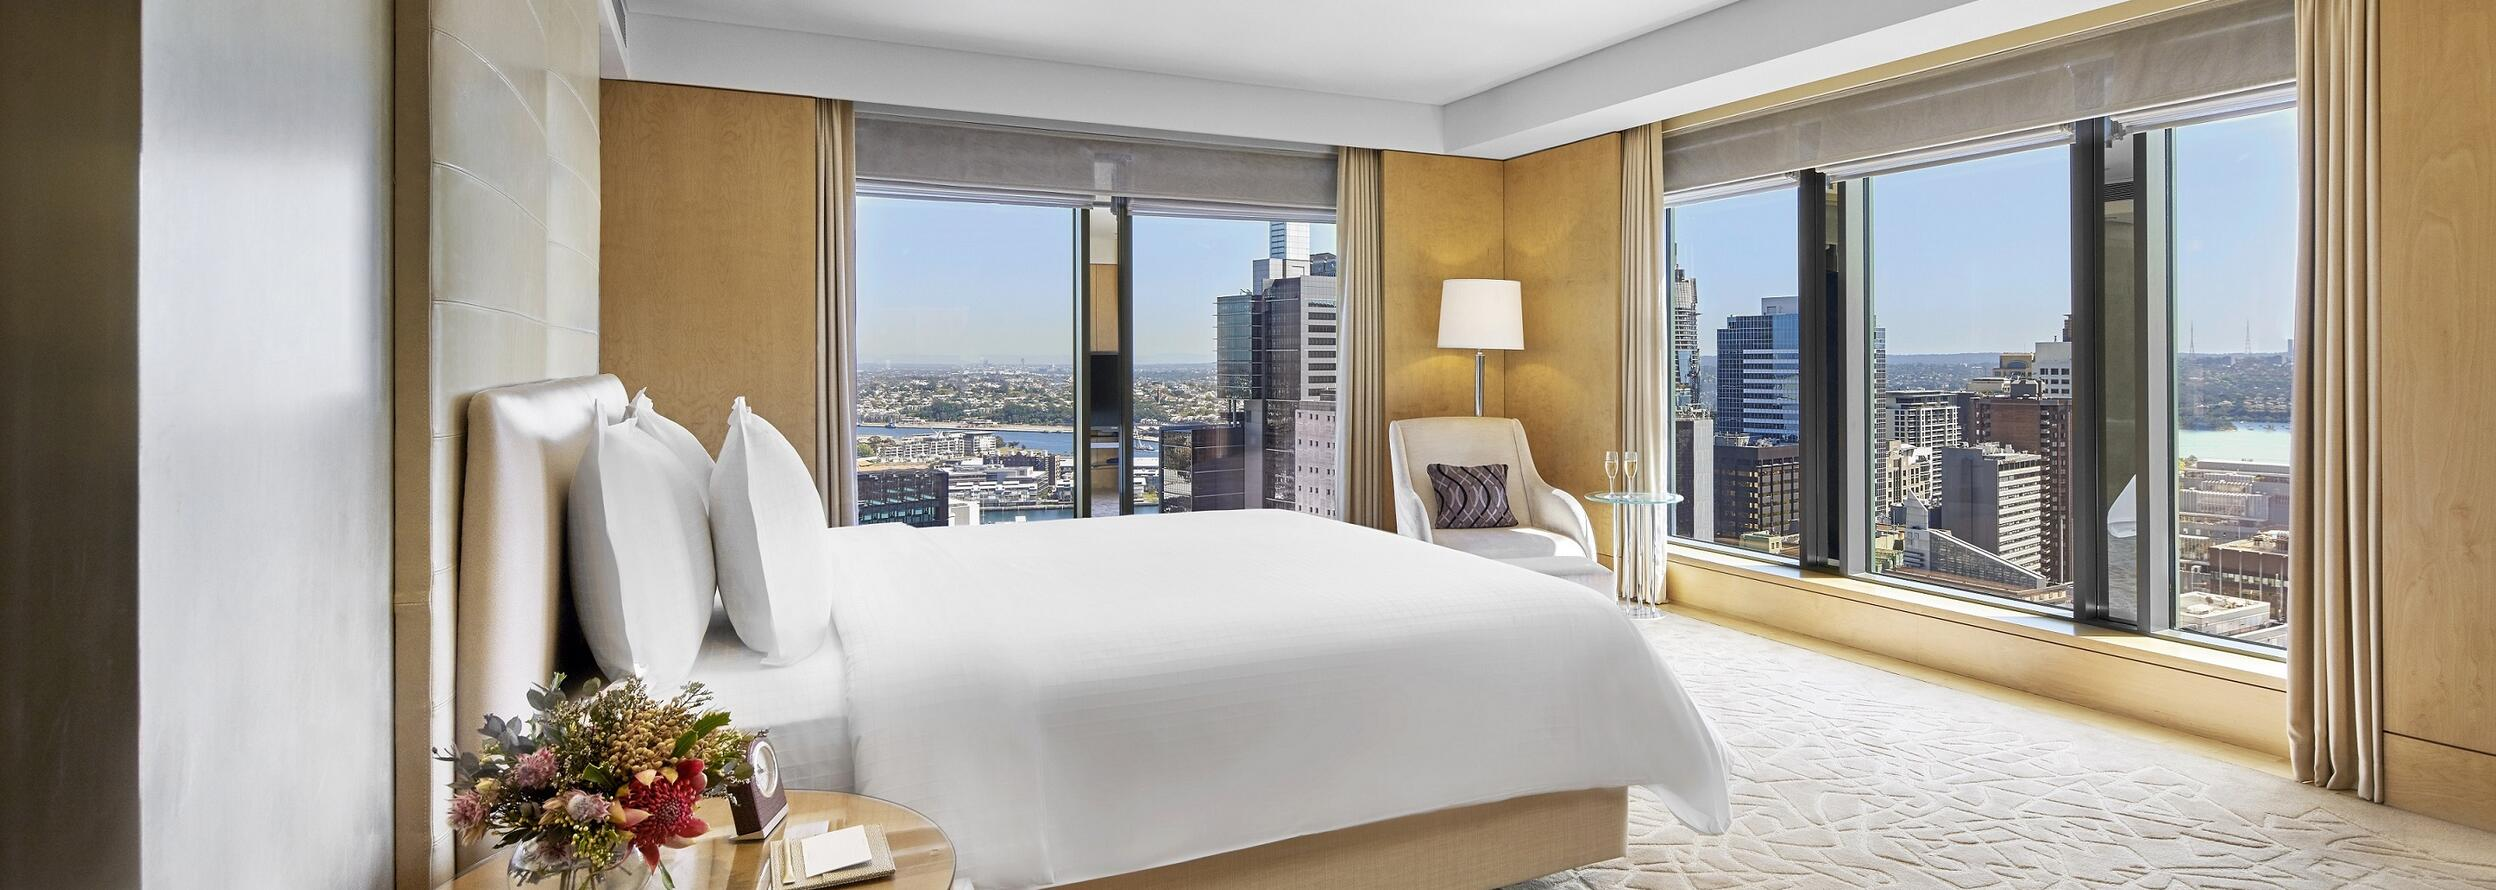 A room with one king bed and a city view